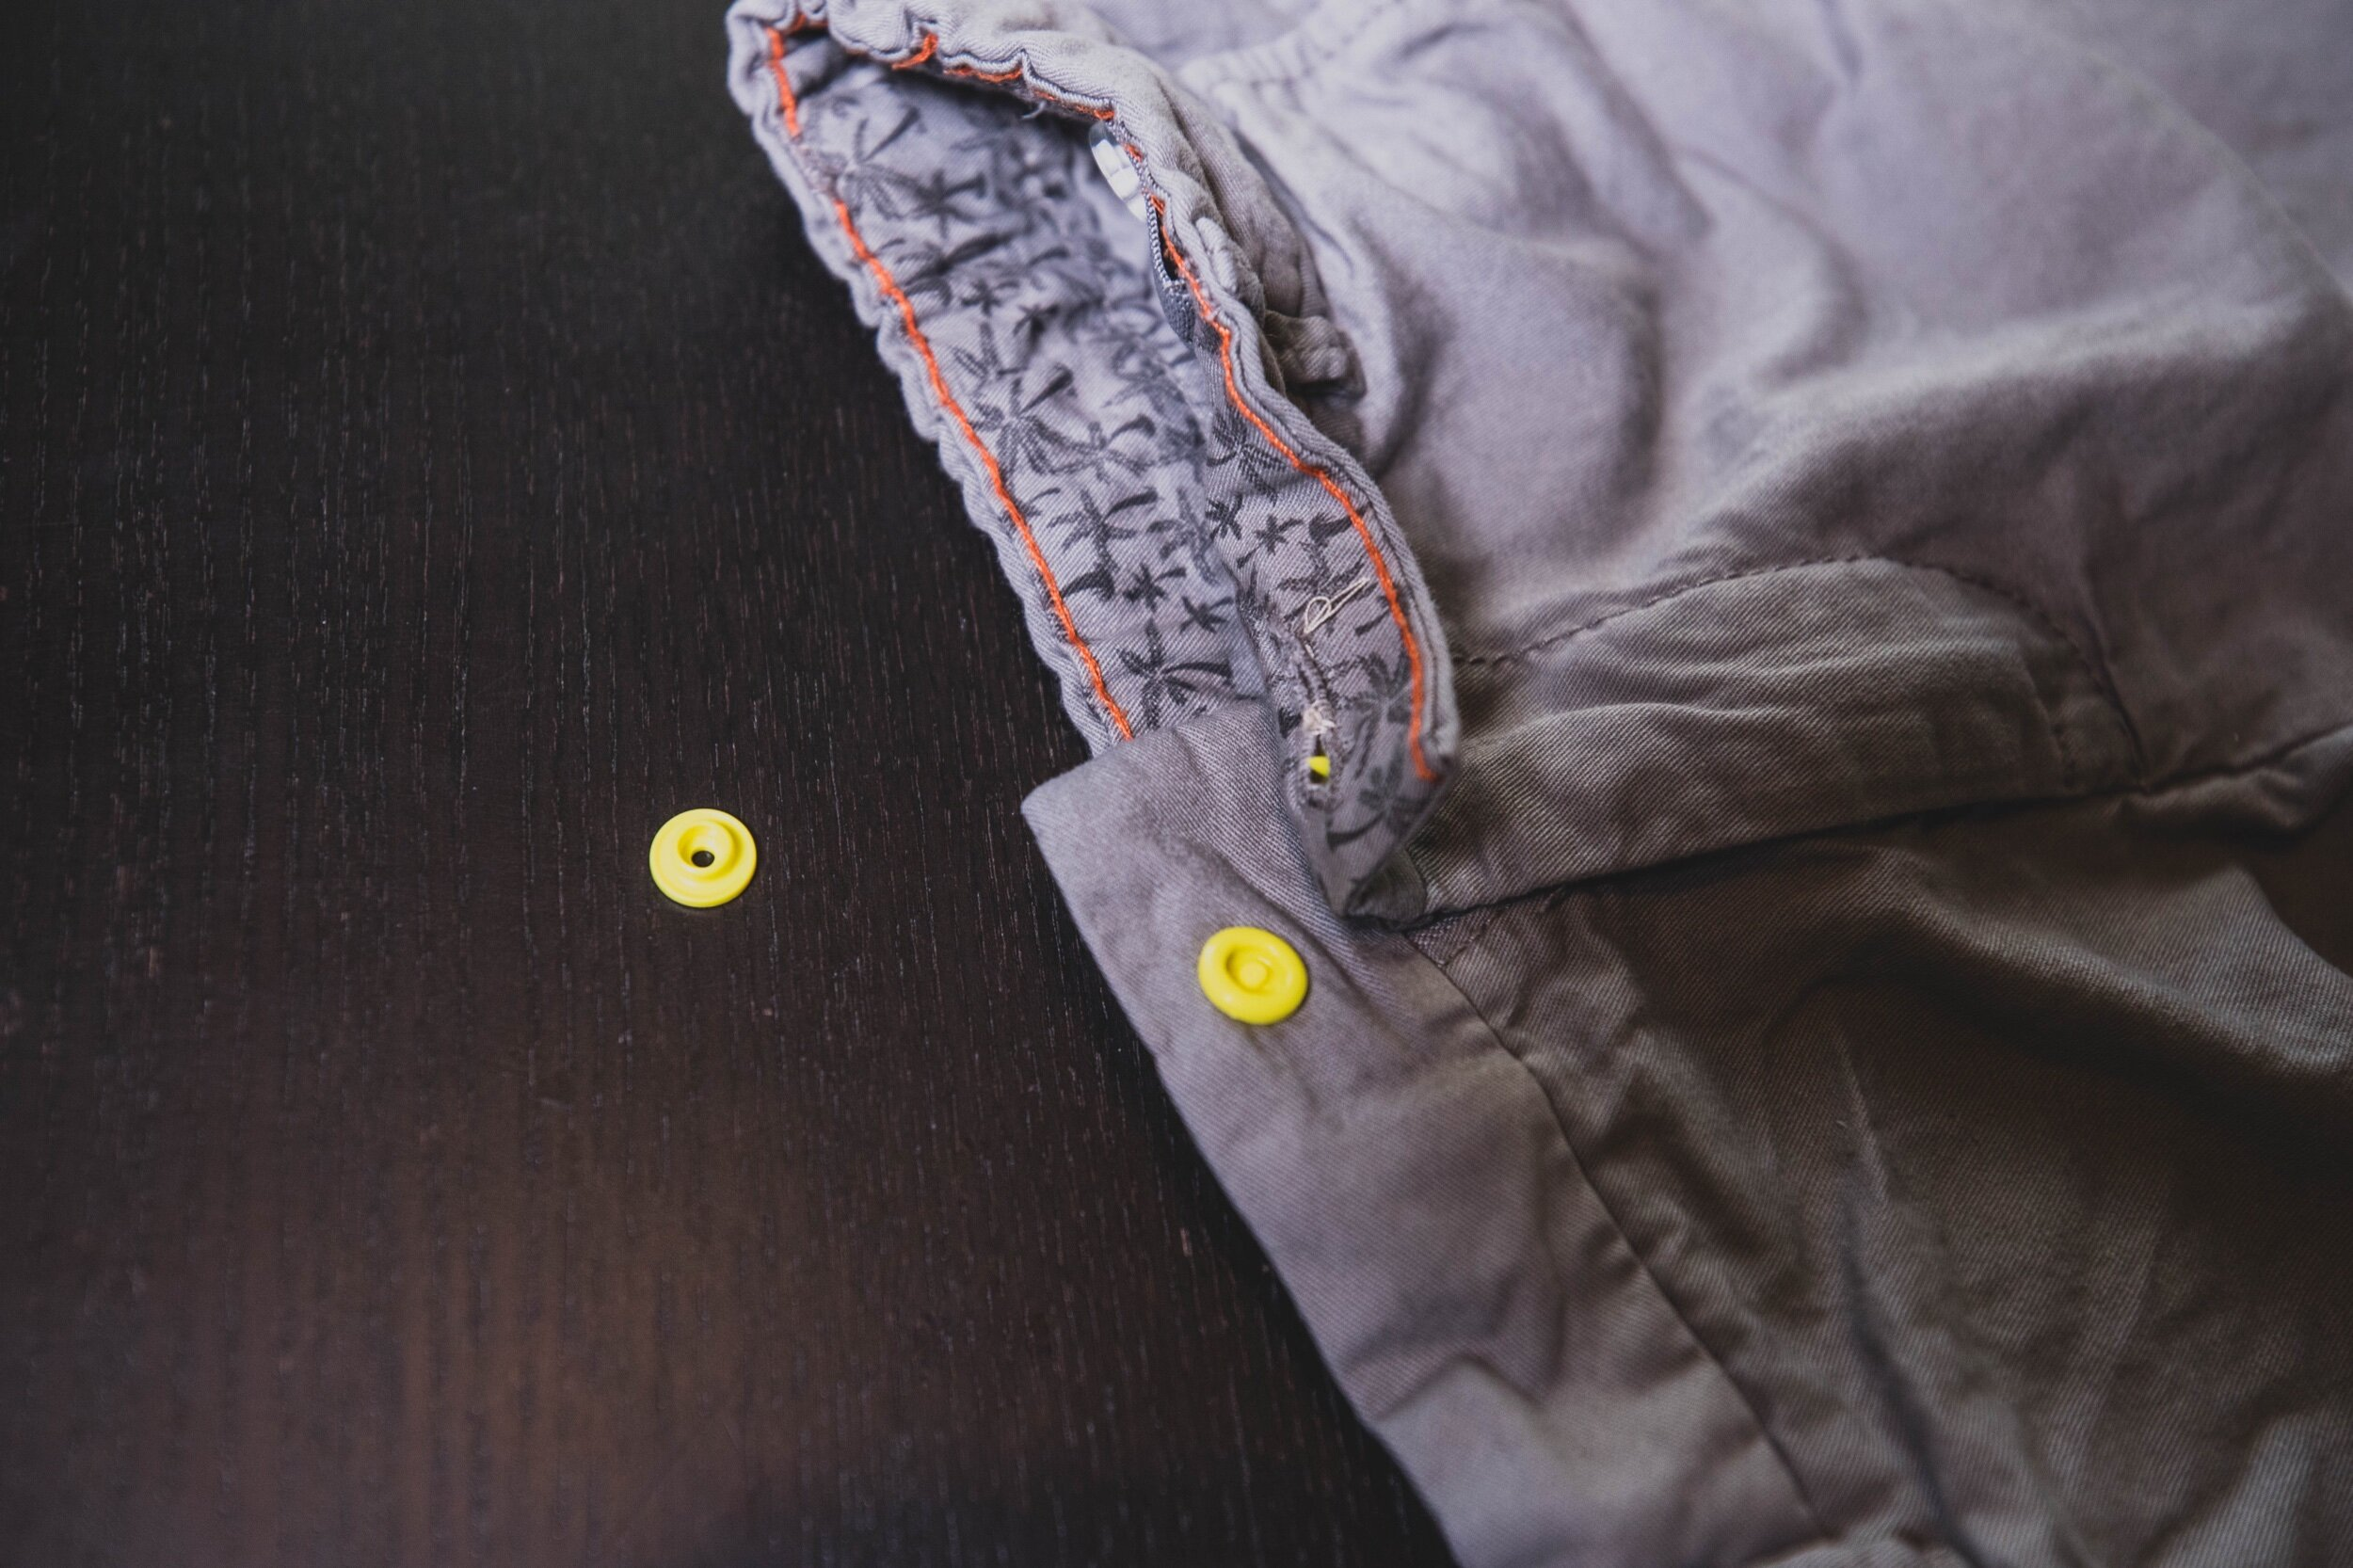 slide base of the snap into the hole of the button slit that you didn't sew up.